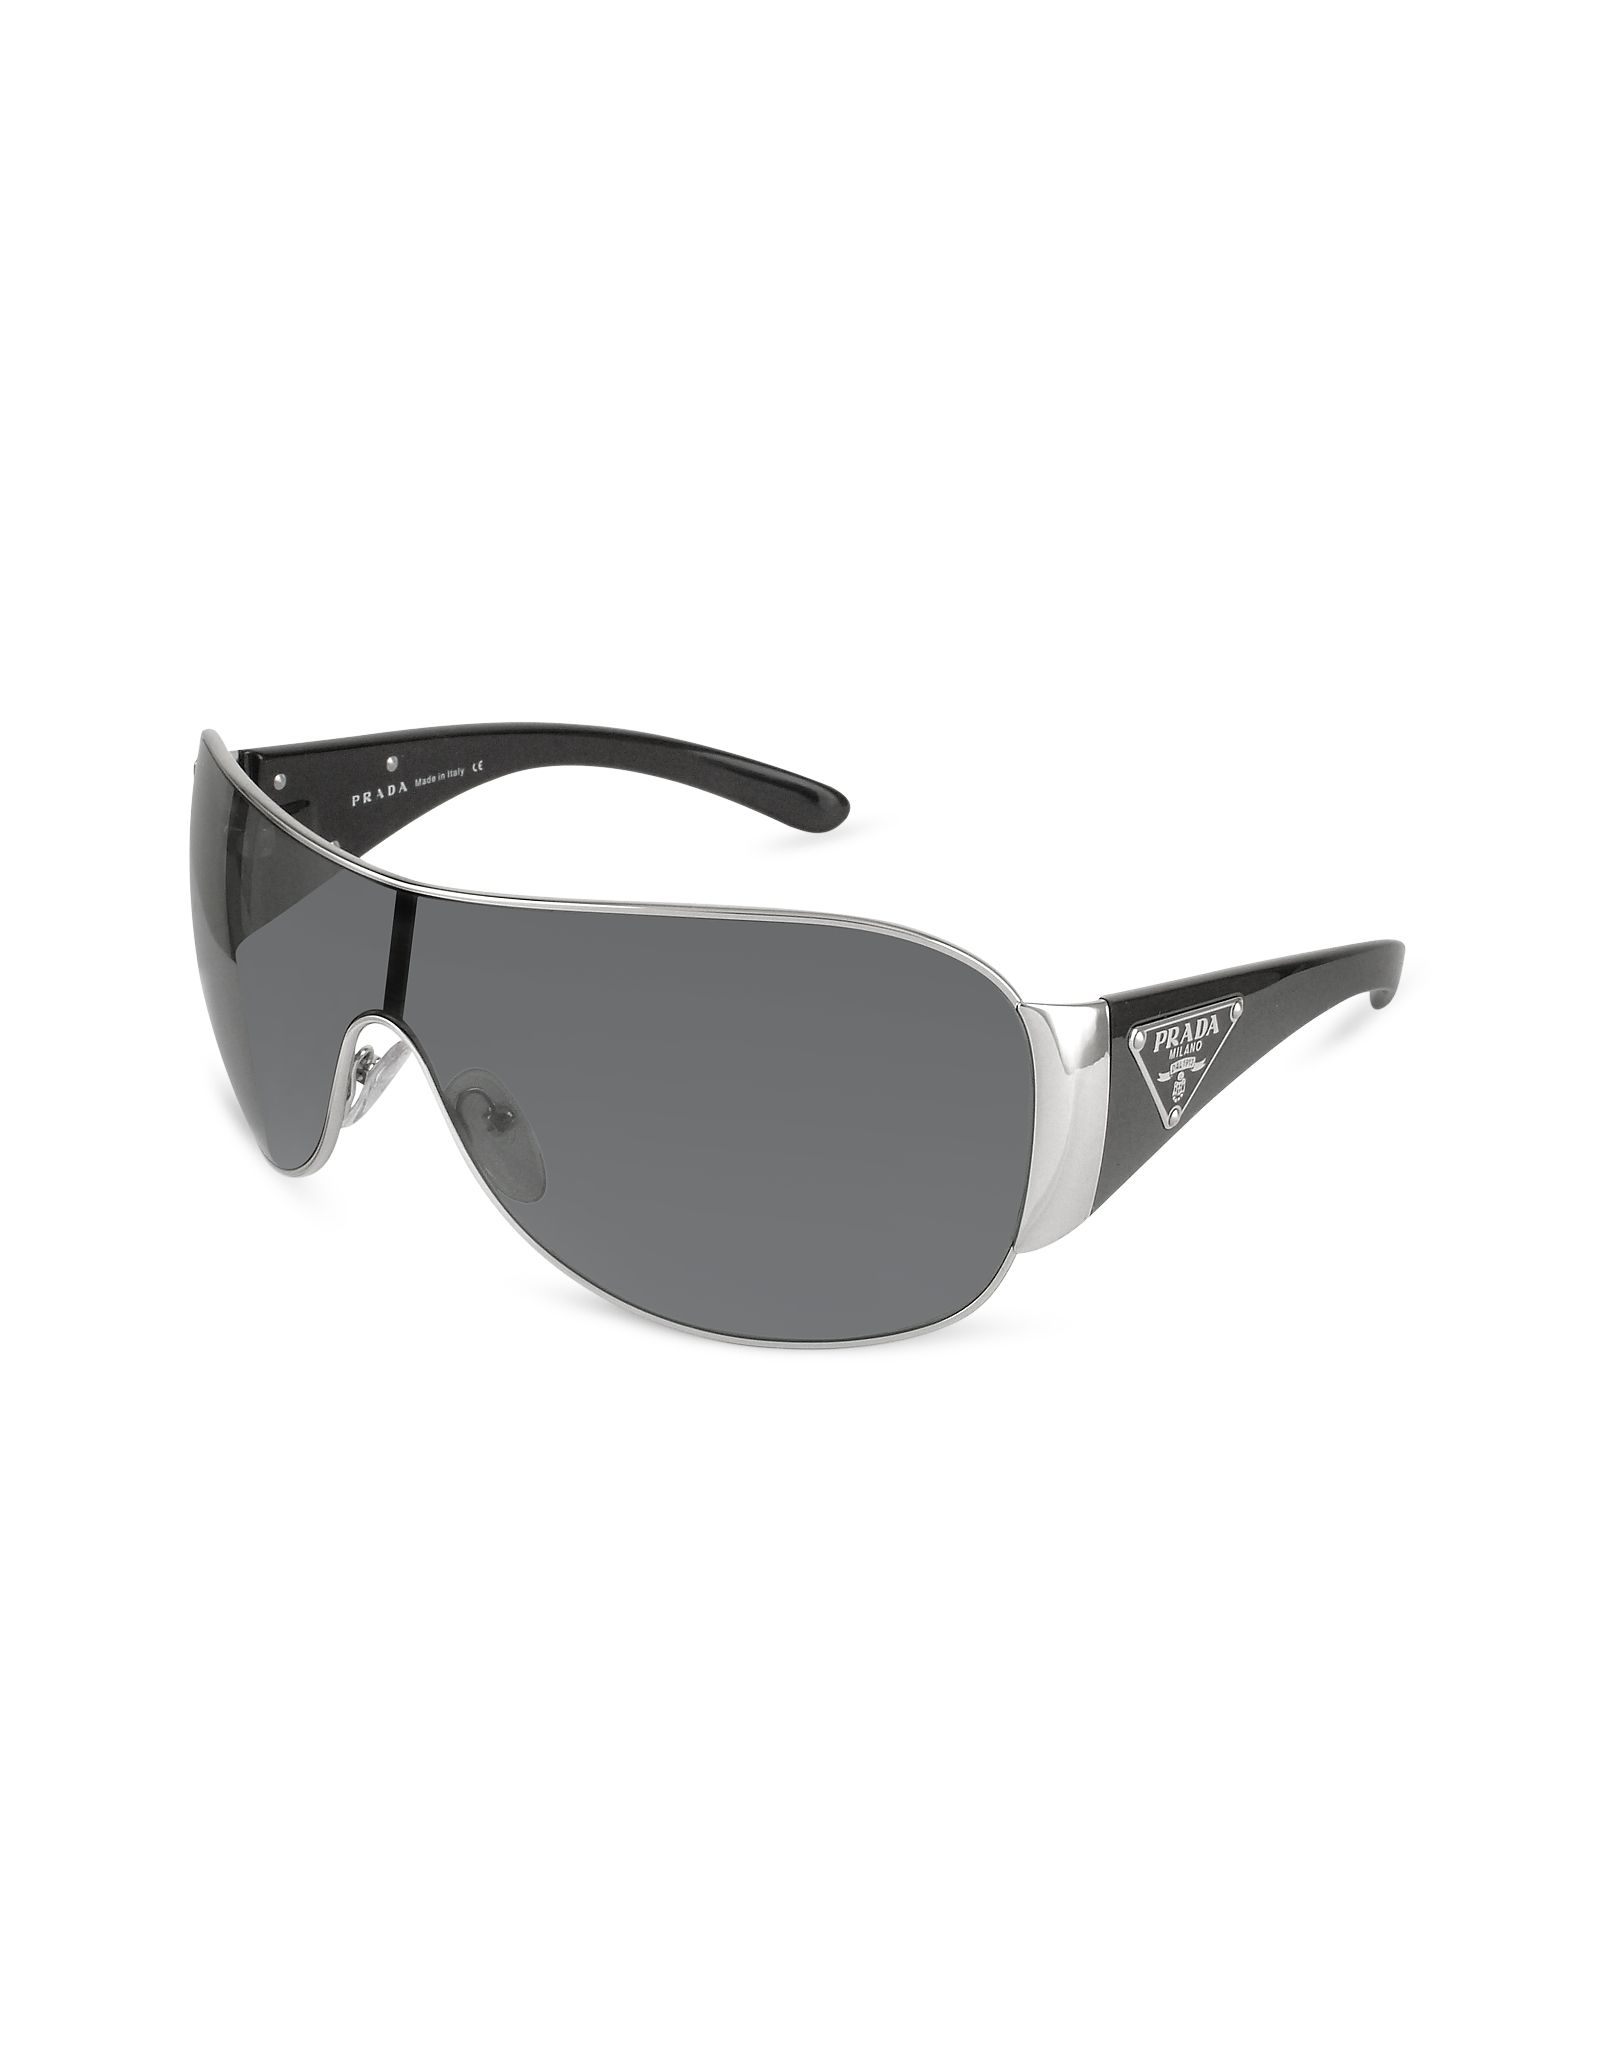 Prada Triangle-Crest Shield Sunglasses $328.00 Actual transaction ...